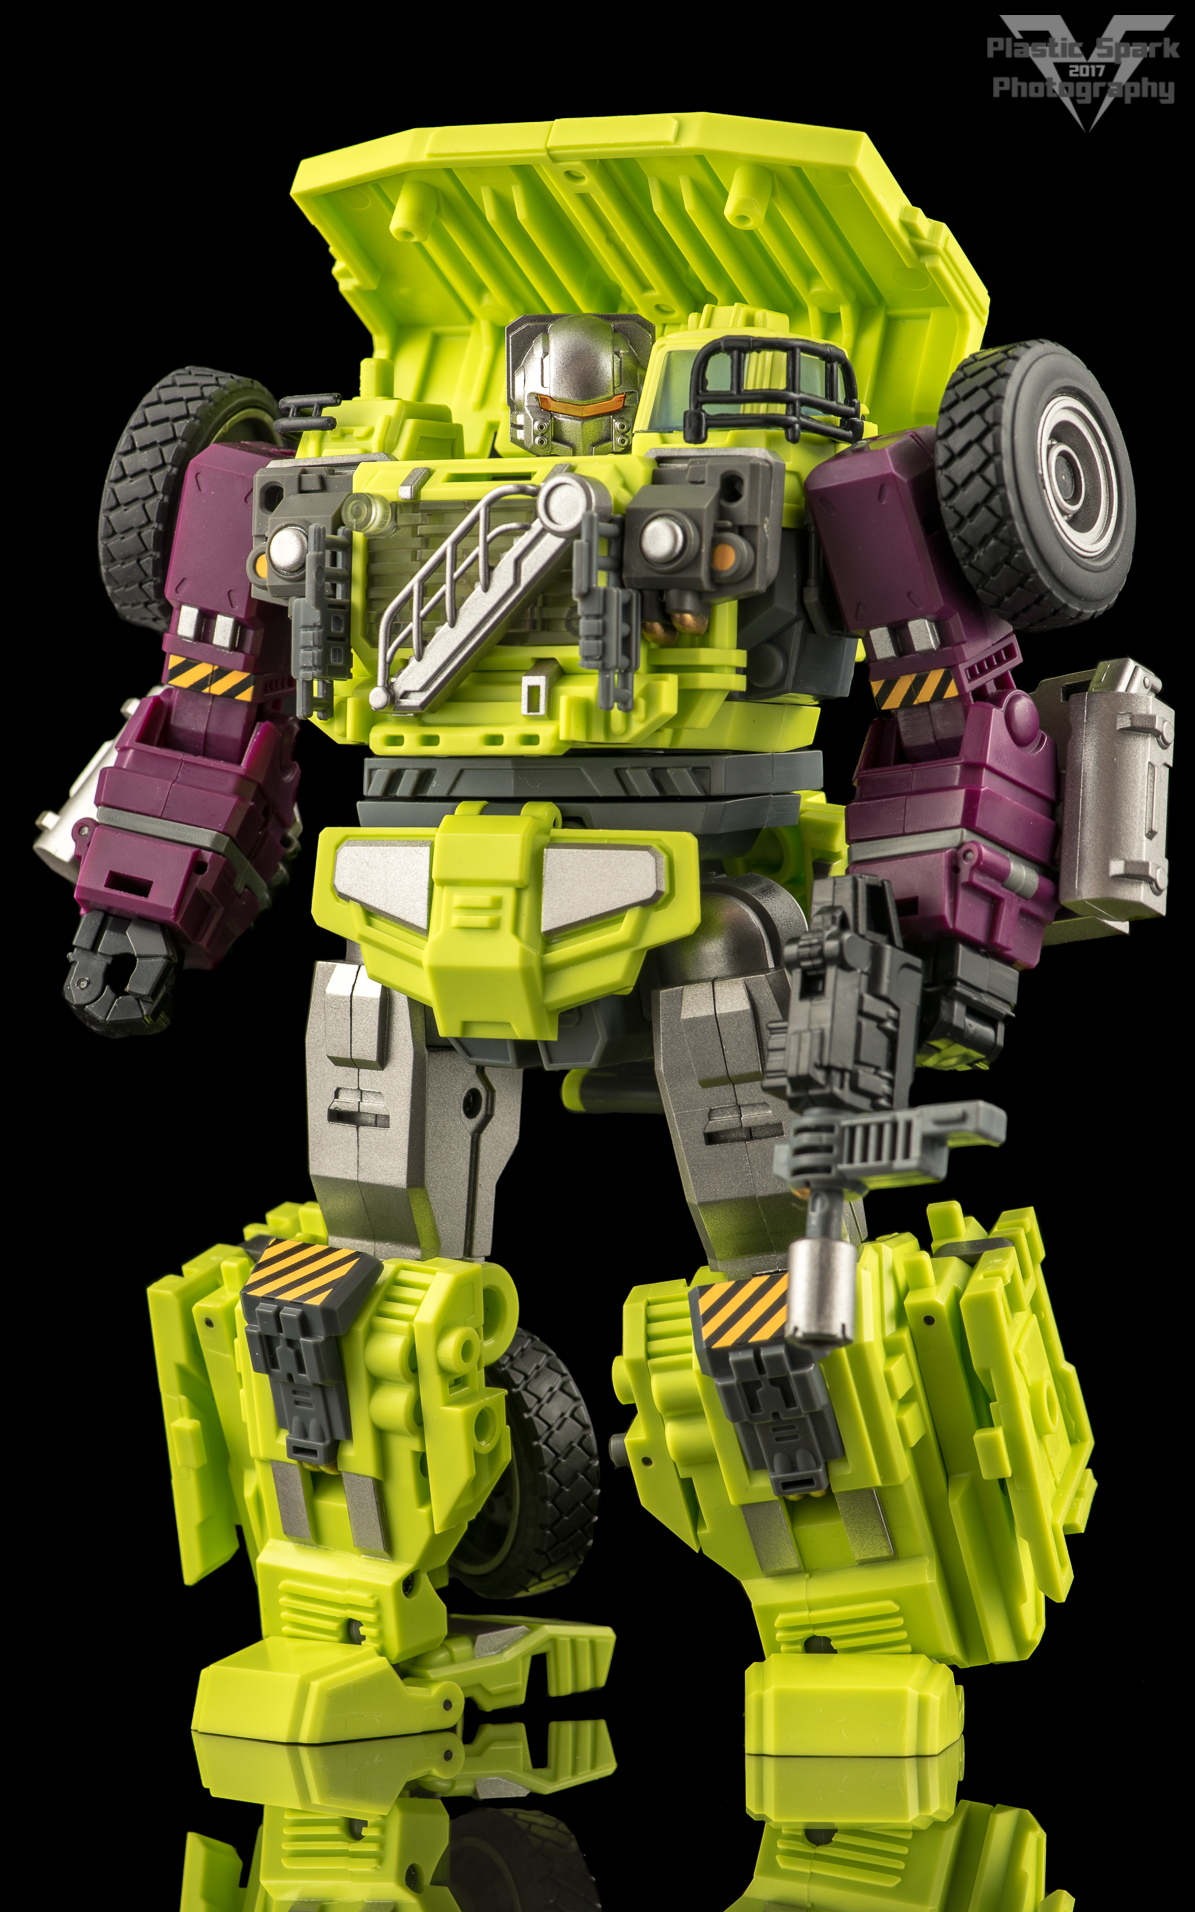 Generation-Toy-Gravity-Builder-(9-of-34).png